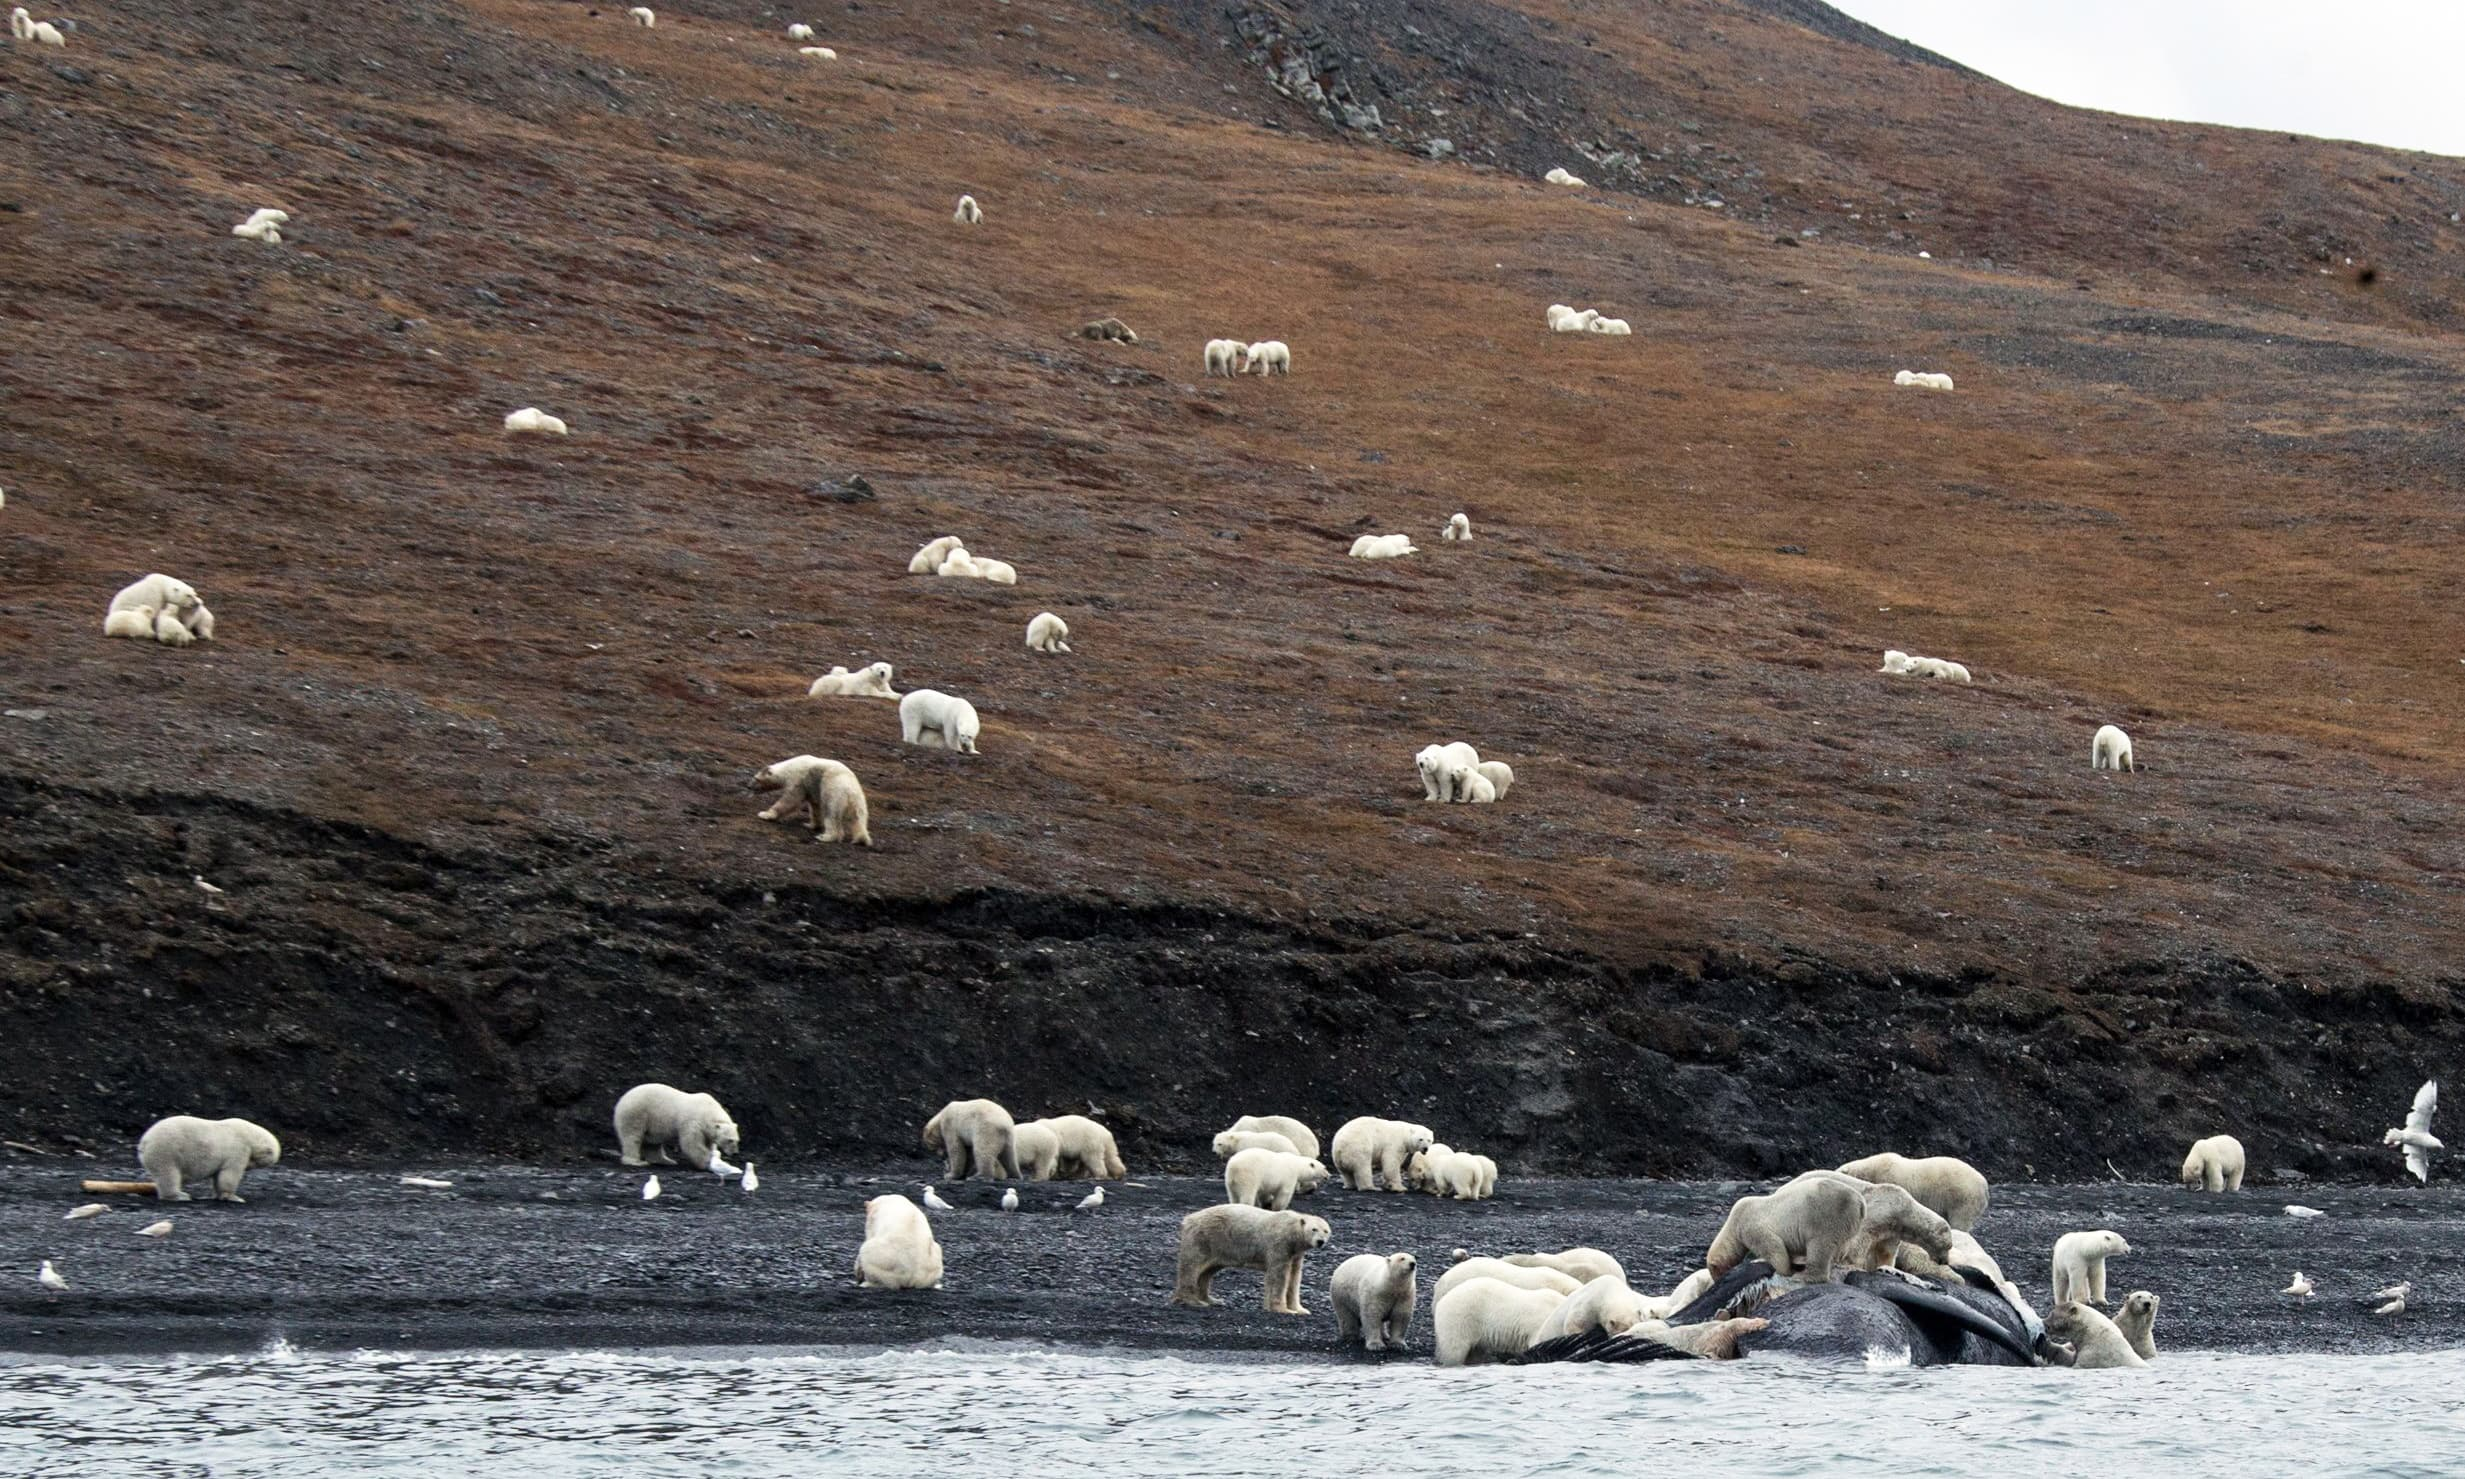 Climate change means ice, where polar bears are most at home, is melting earlier in the year and so polar bears have to spend longer on land. —AFP